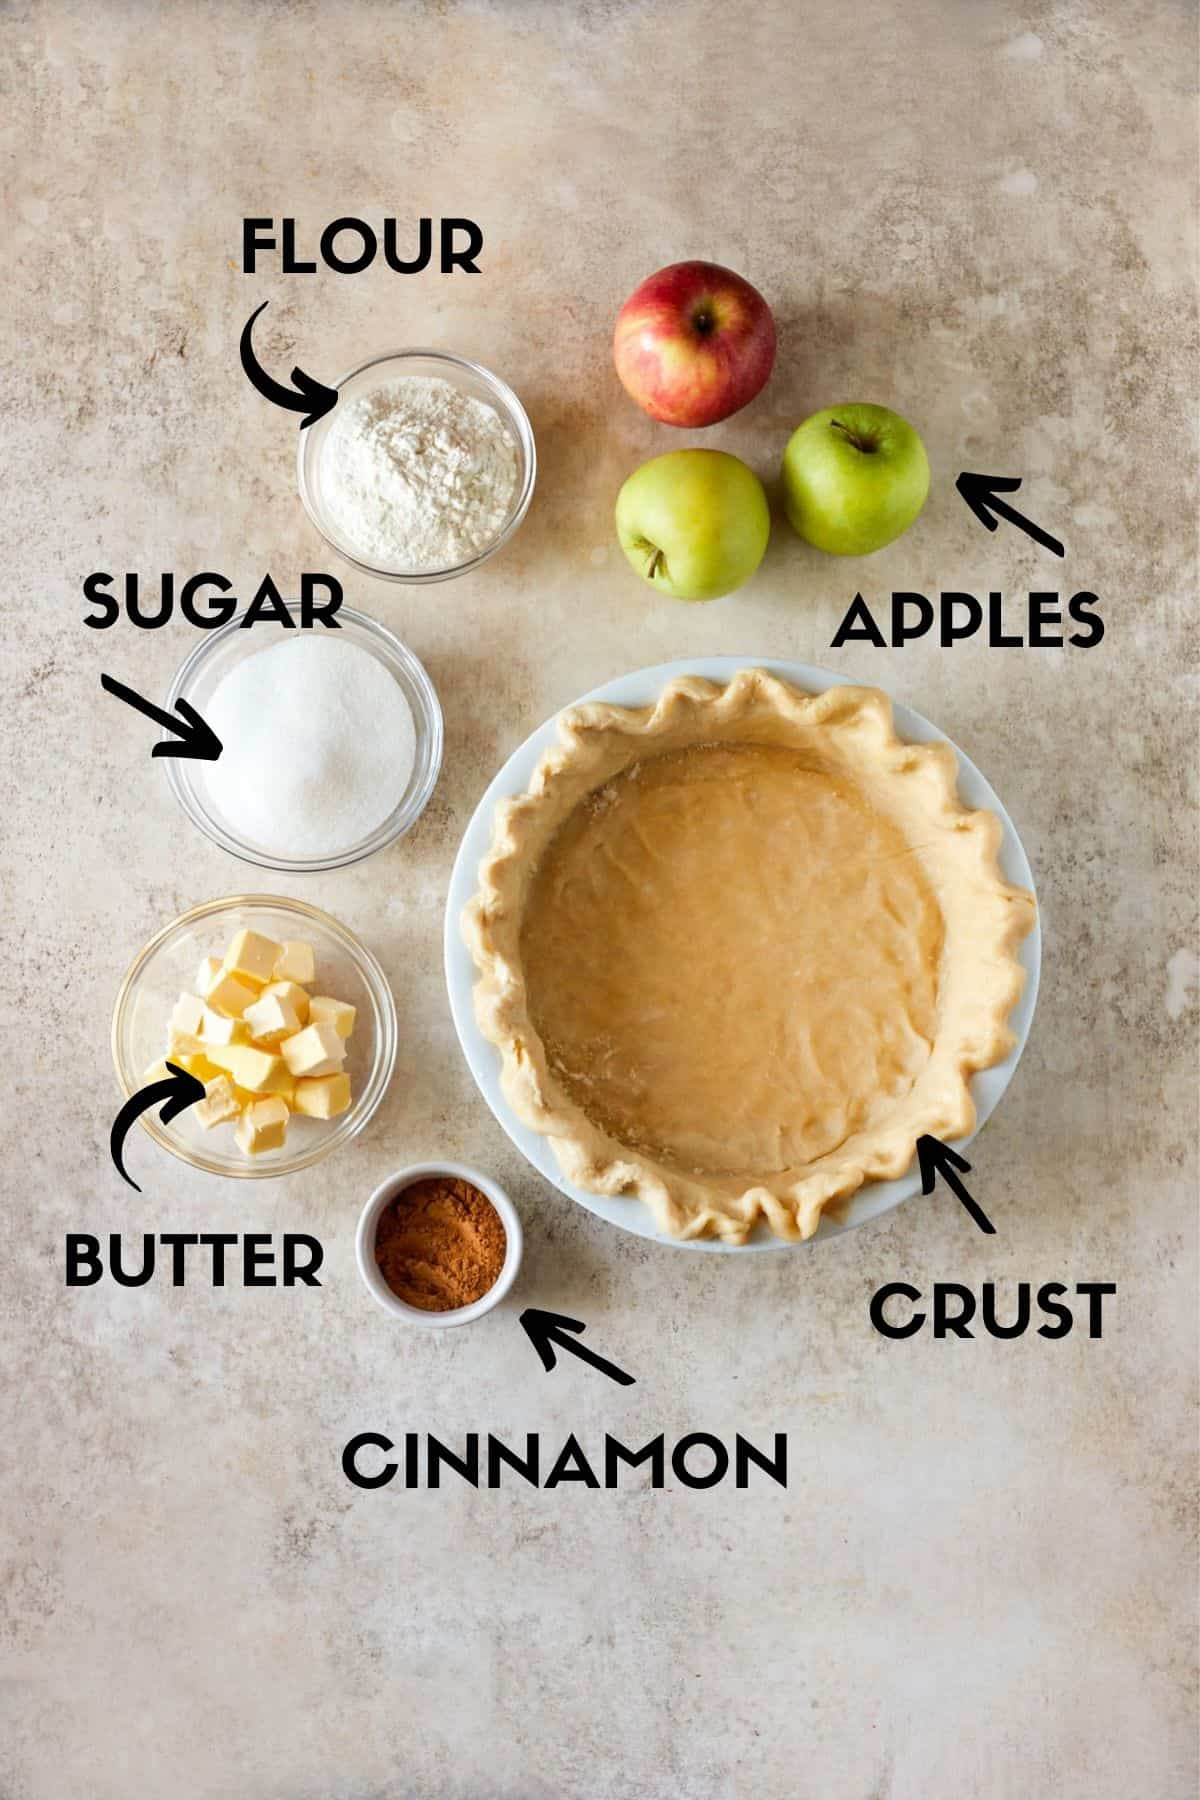 ingredients for apple crumble pie.